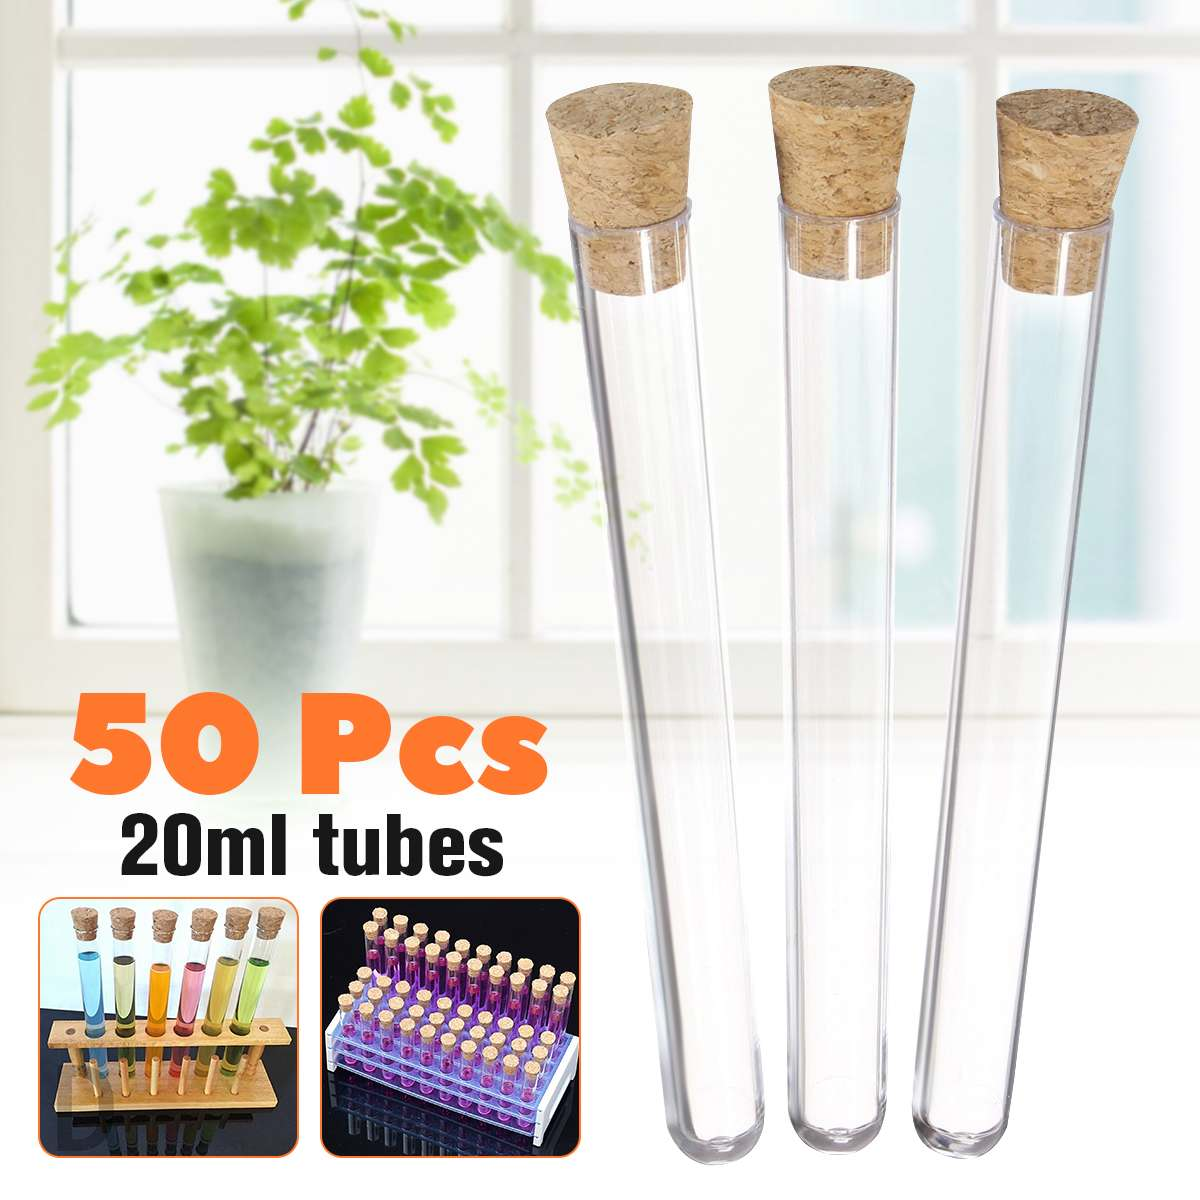 50Pcs 20ml Plastic Test Tubes With Corks Stoppers Clear Like Glass Wedding Favours Party Candy Container Lab Supplies